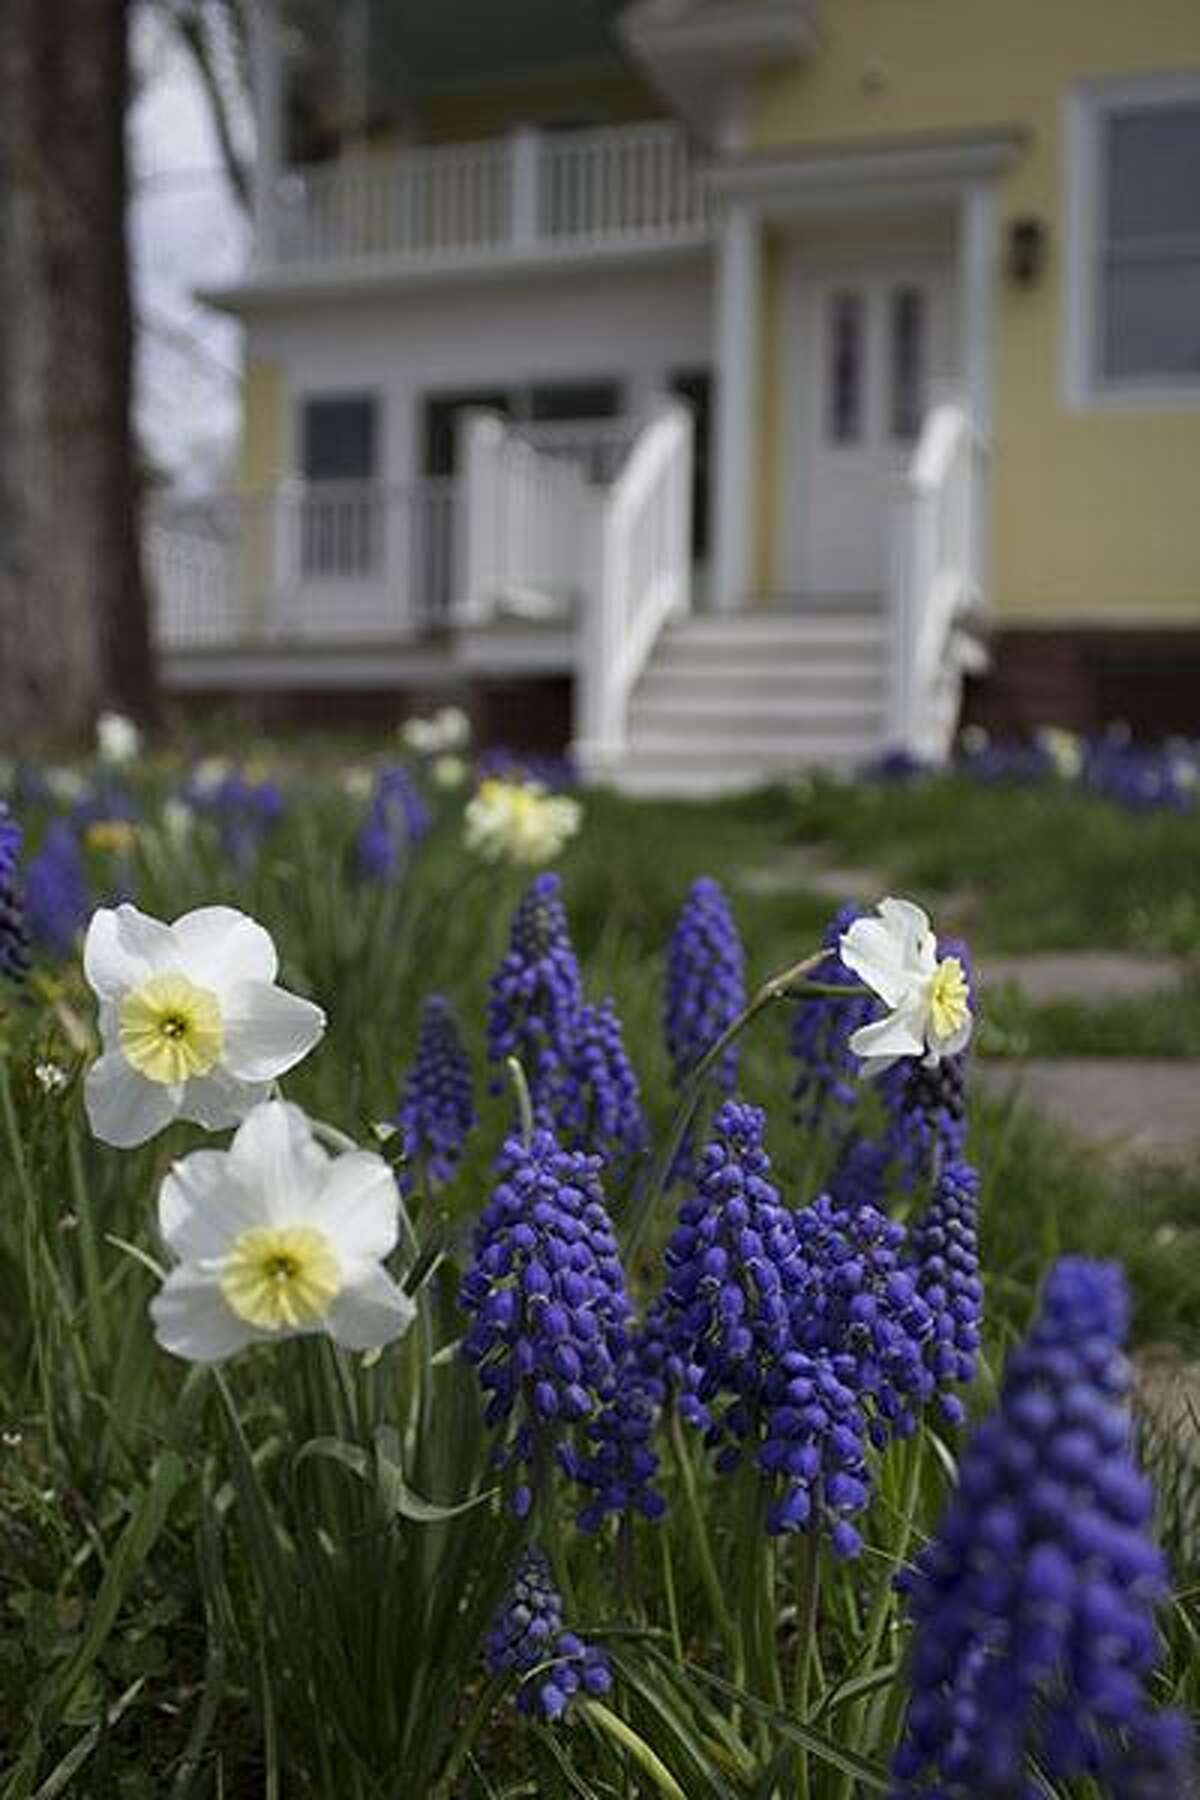 Colorblends House & Spring Garden in Bridgeport will be open to the public Saturday through May 14. The garden will be open dawn to dusk free of charge. Find out more.